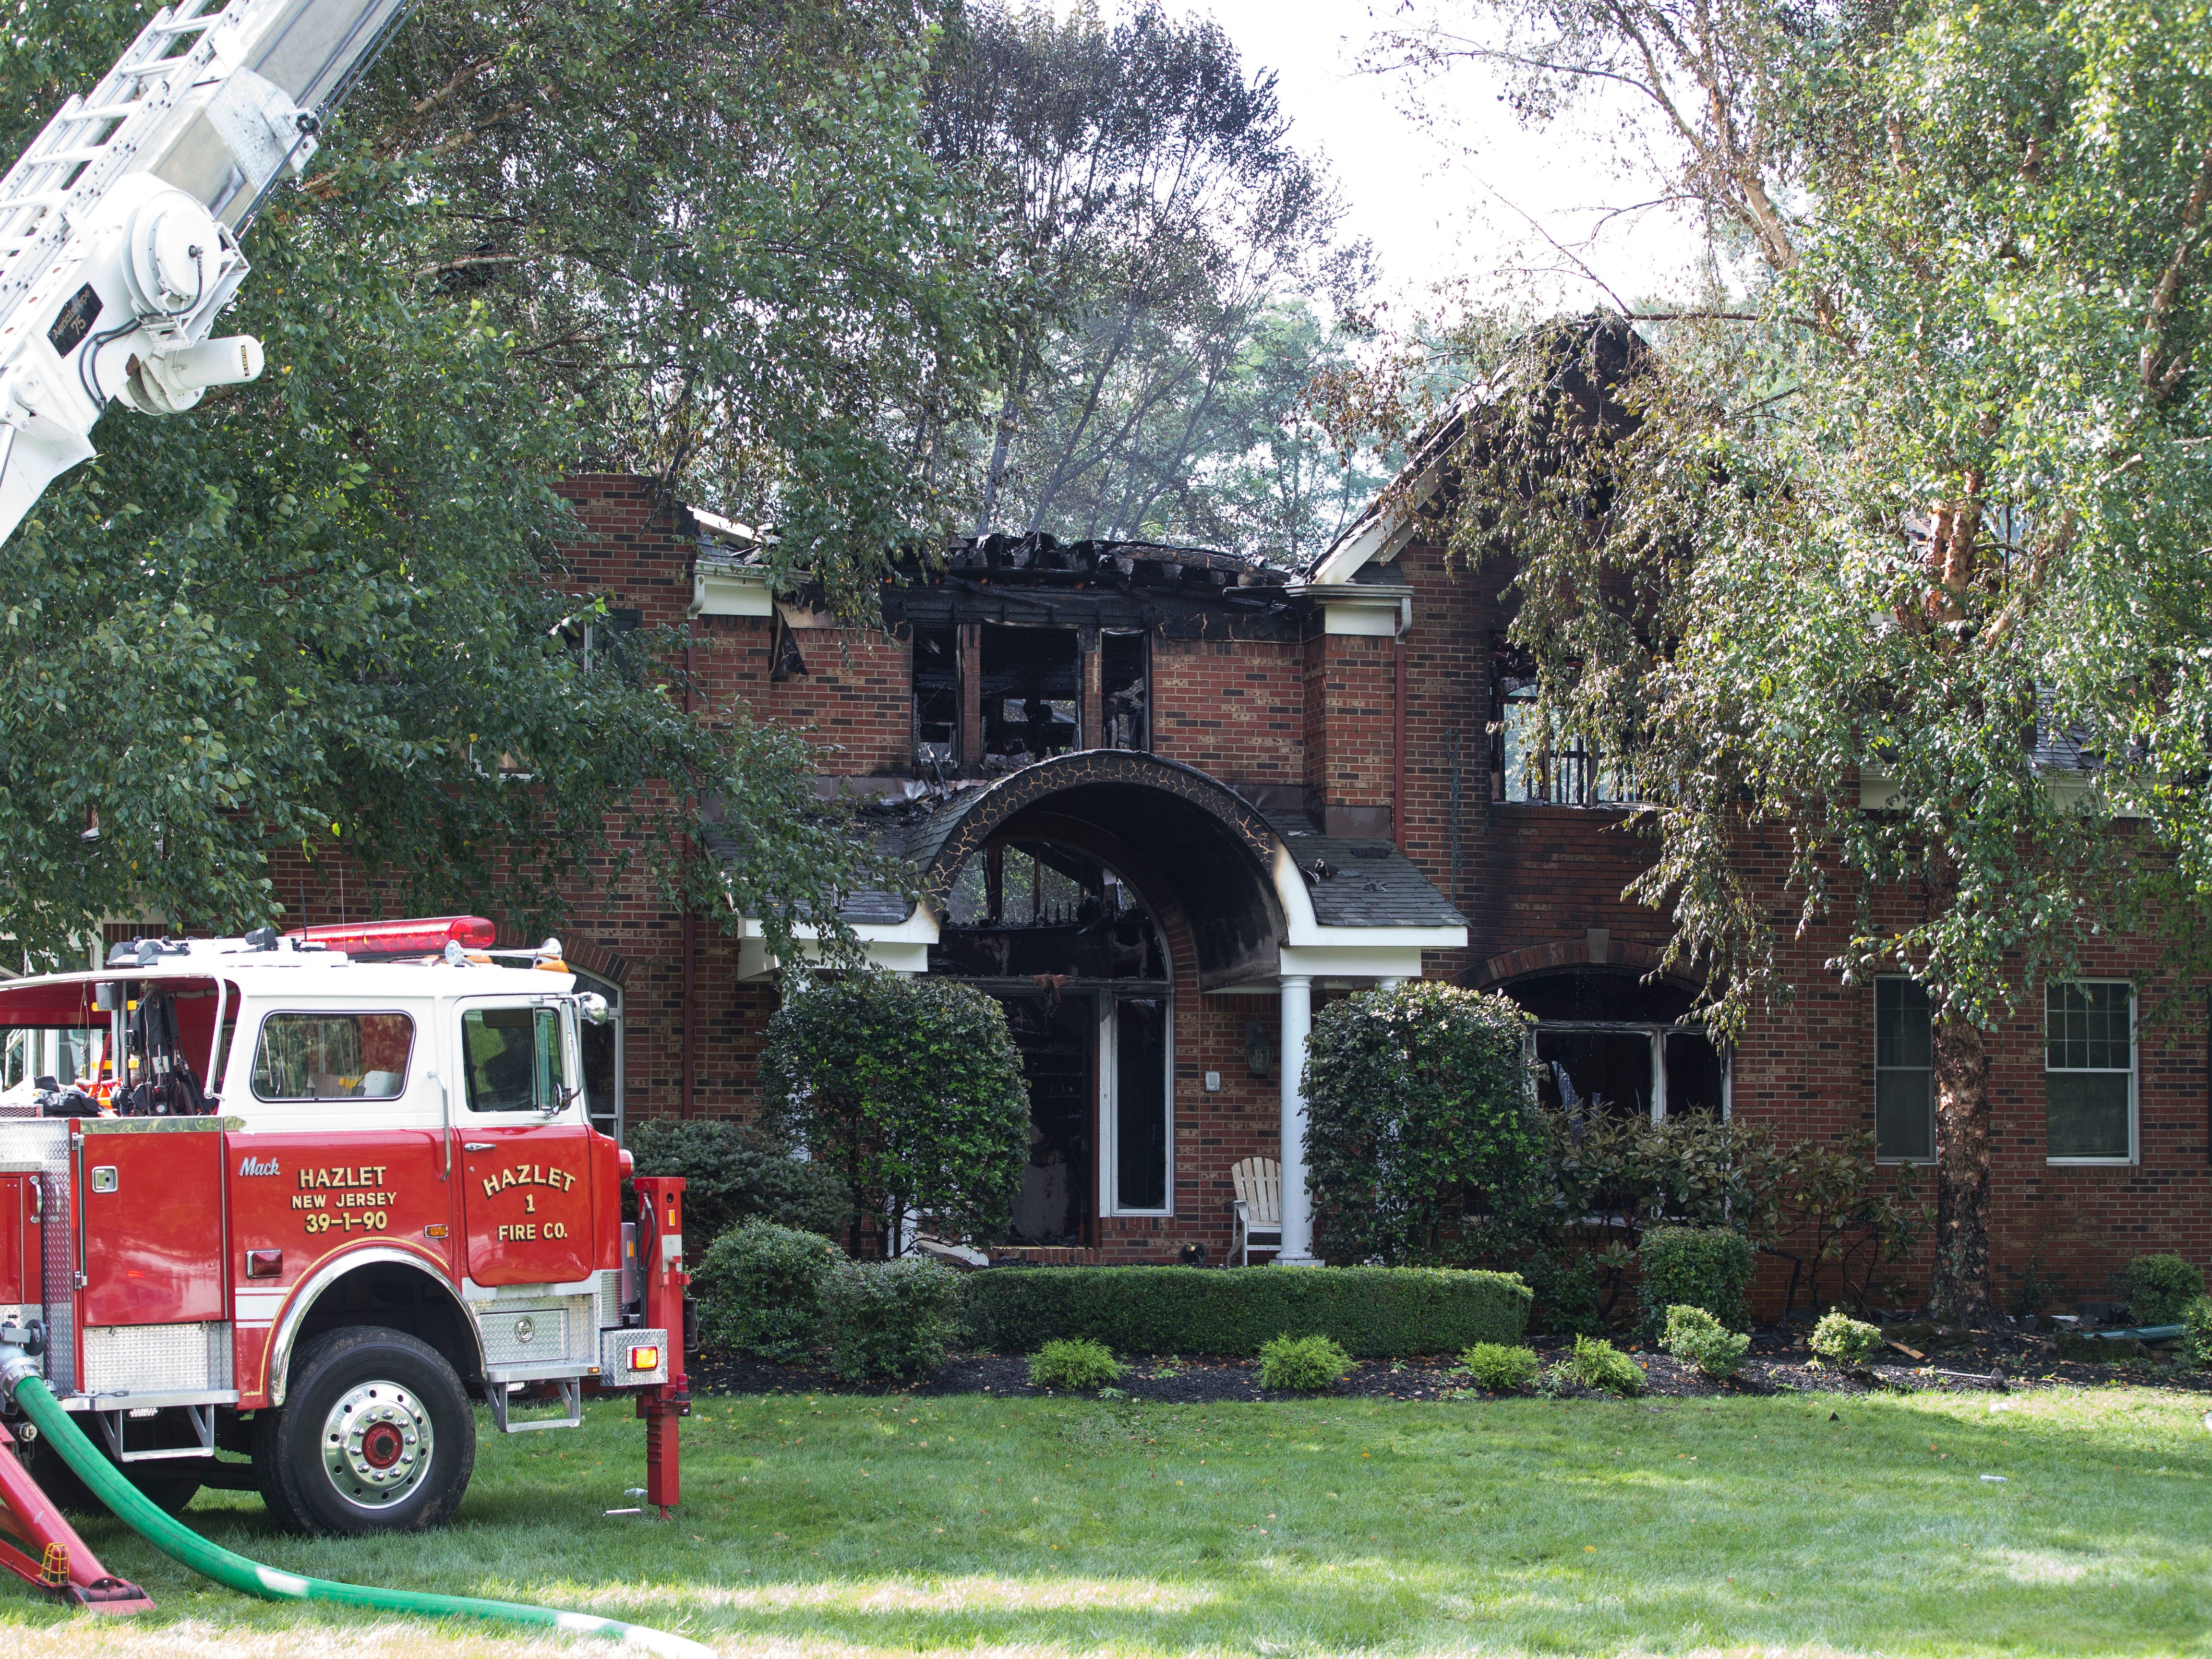 A home located at 6 Barrister Drive in Holmdel suffered severe damage after a fire broke out early morning on the back deck and quickly engulfed the structure.